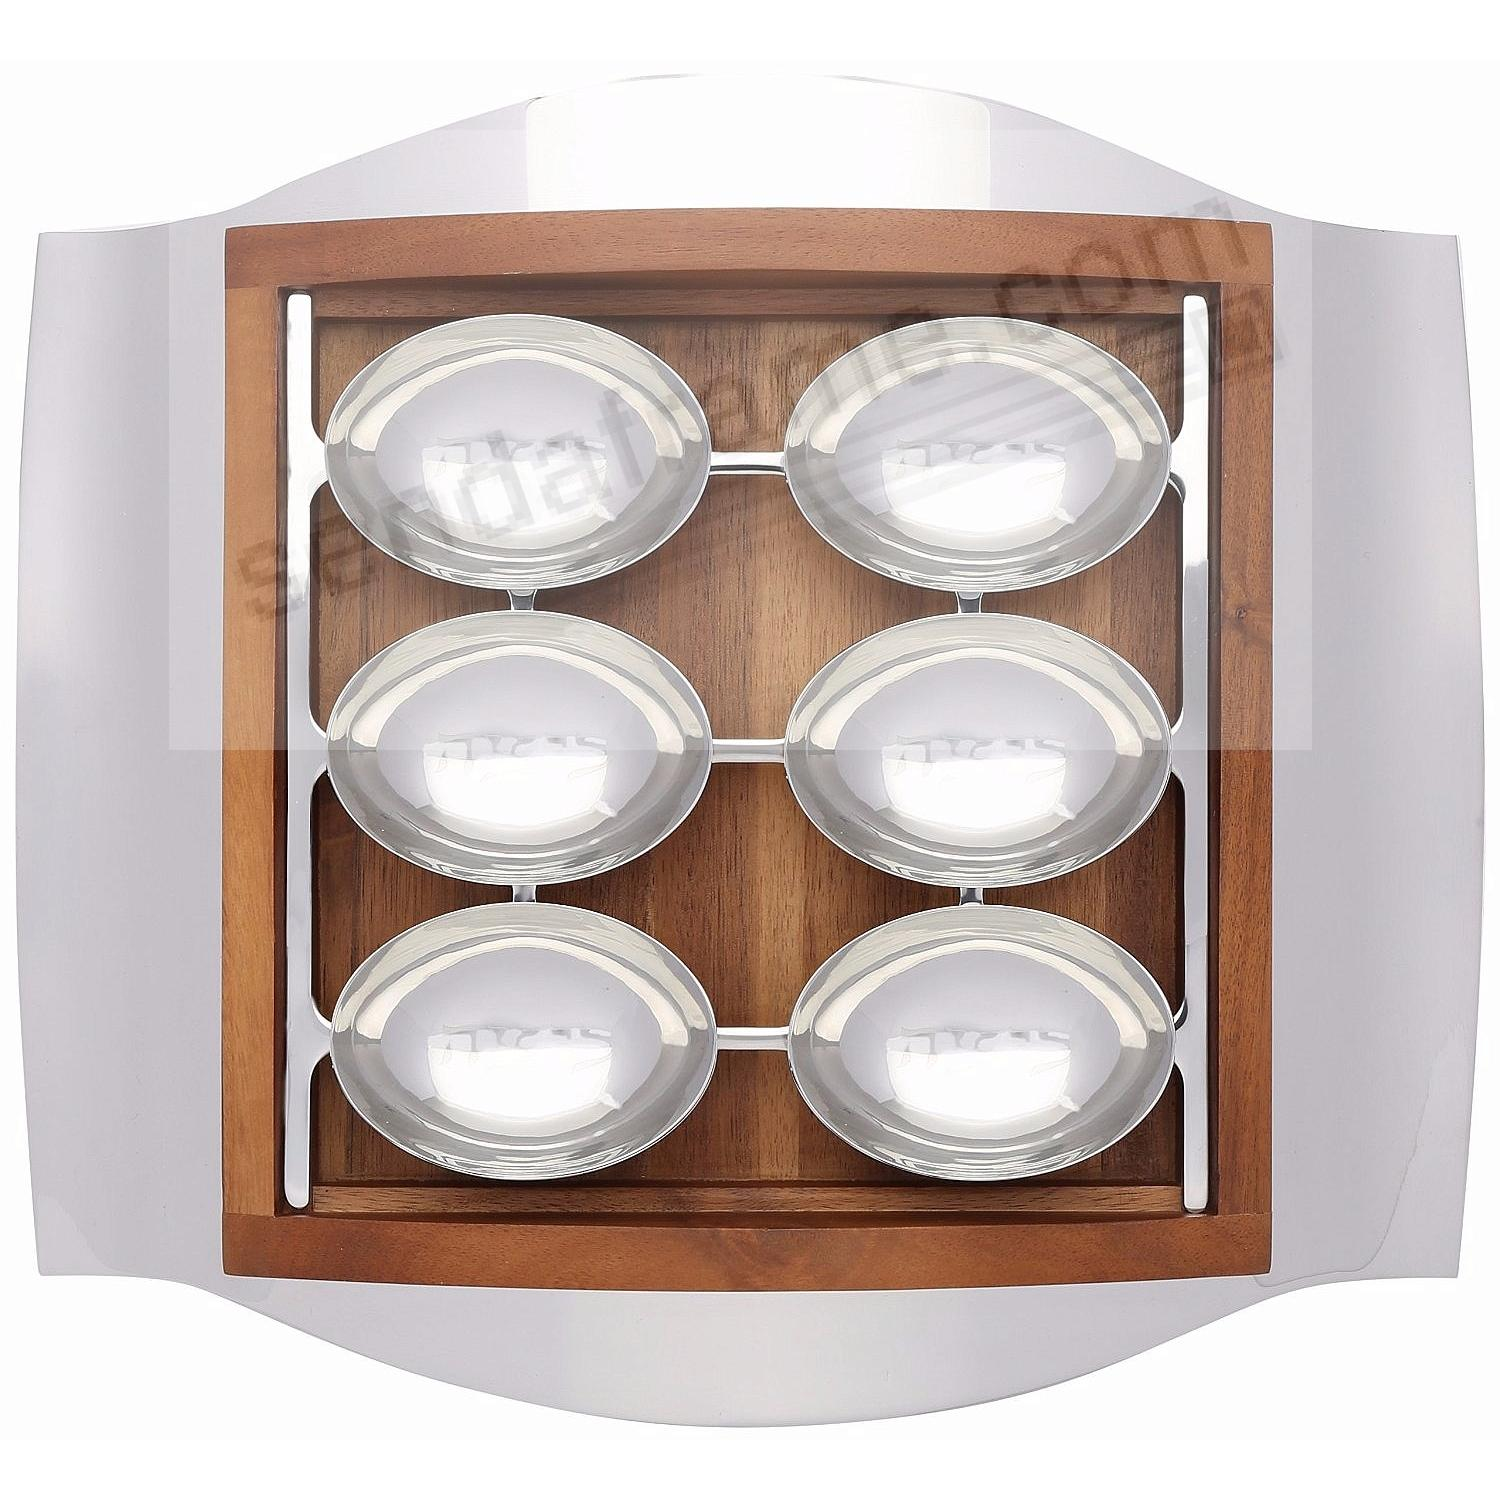 THE WAVE SEDER PLATE crafted by Nambe®